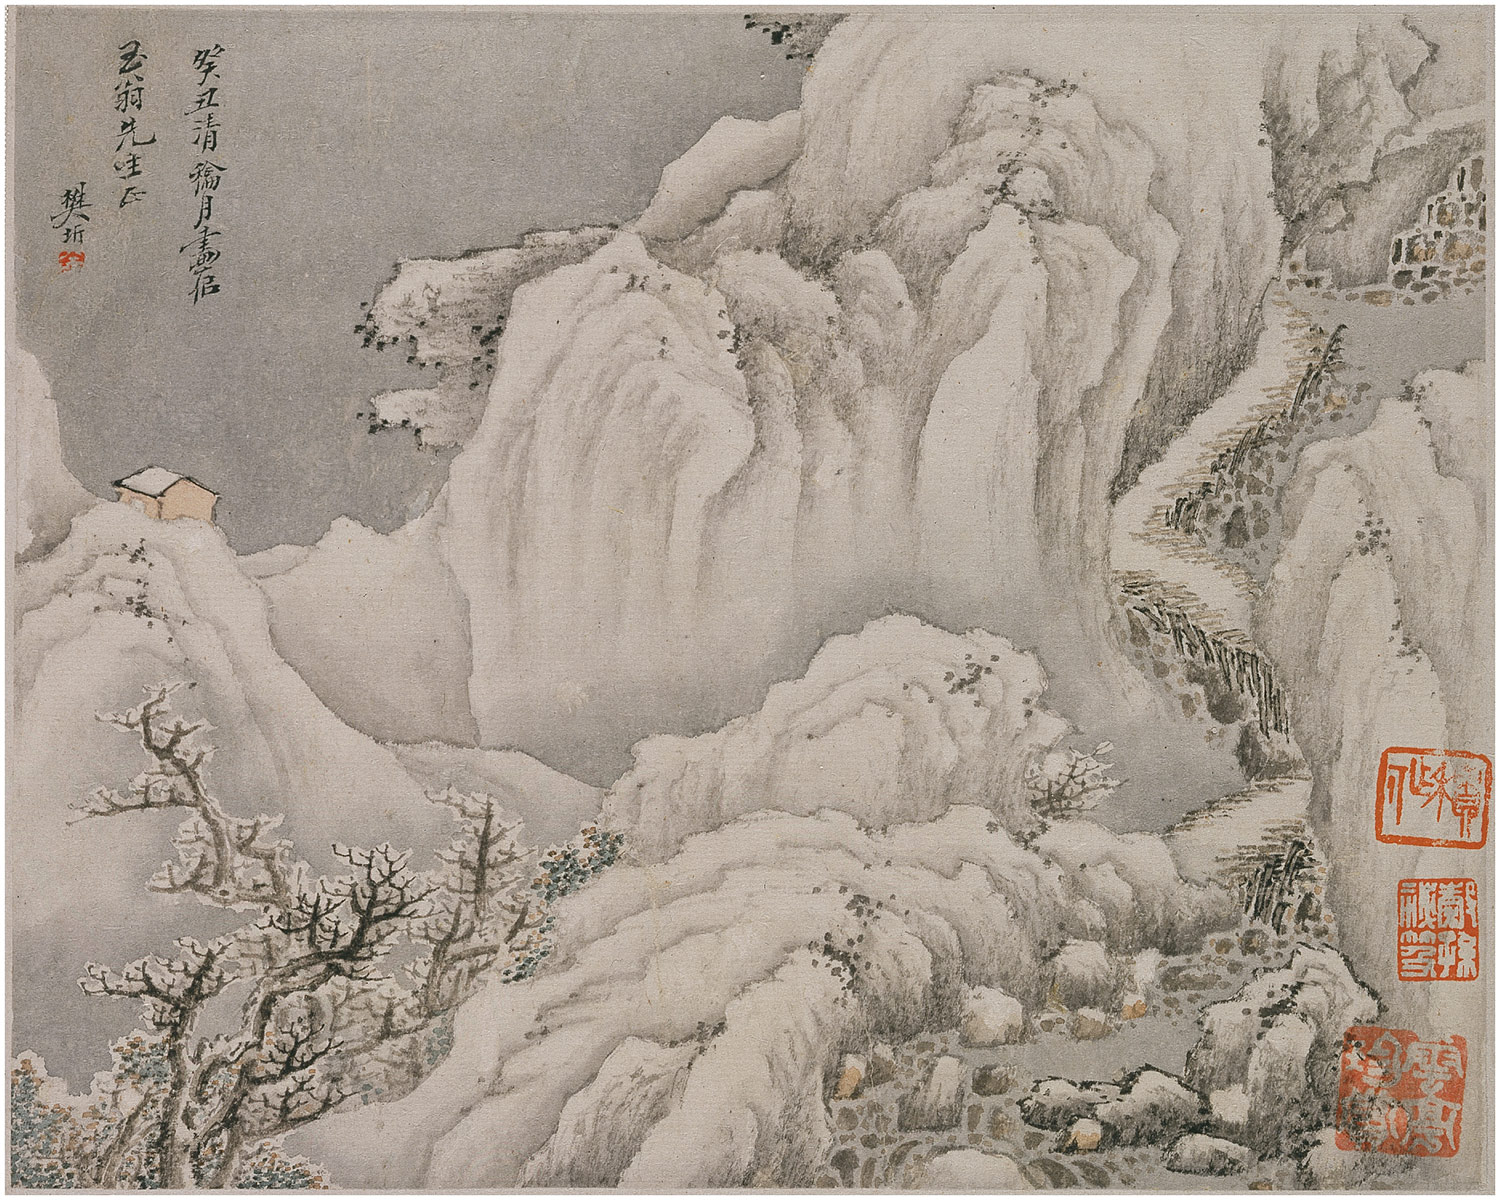 The Qing Dynasty Painting